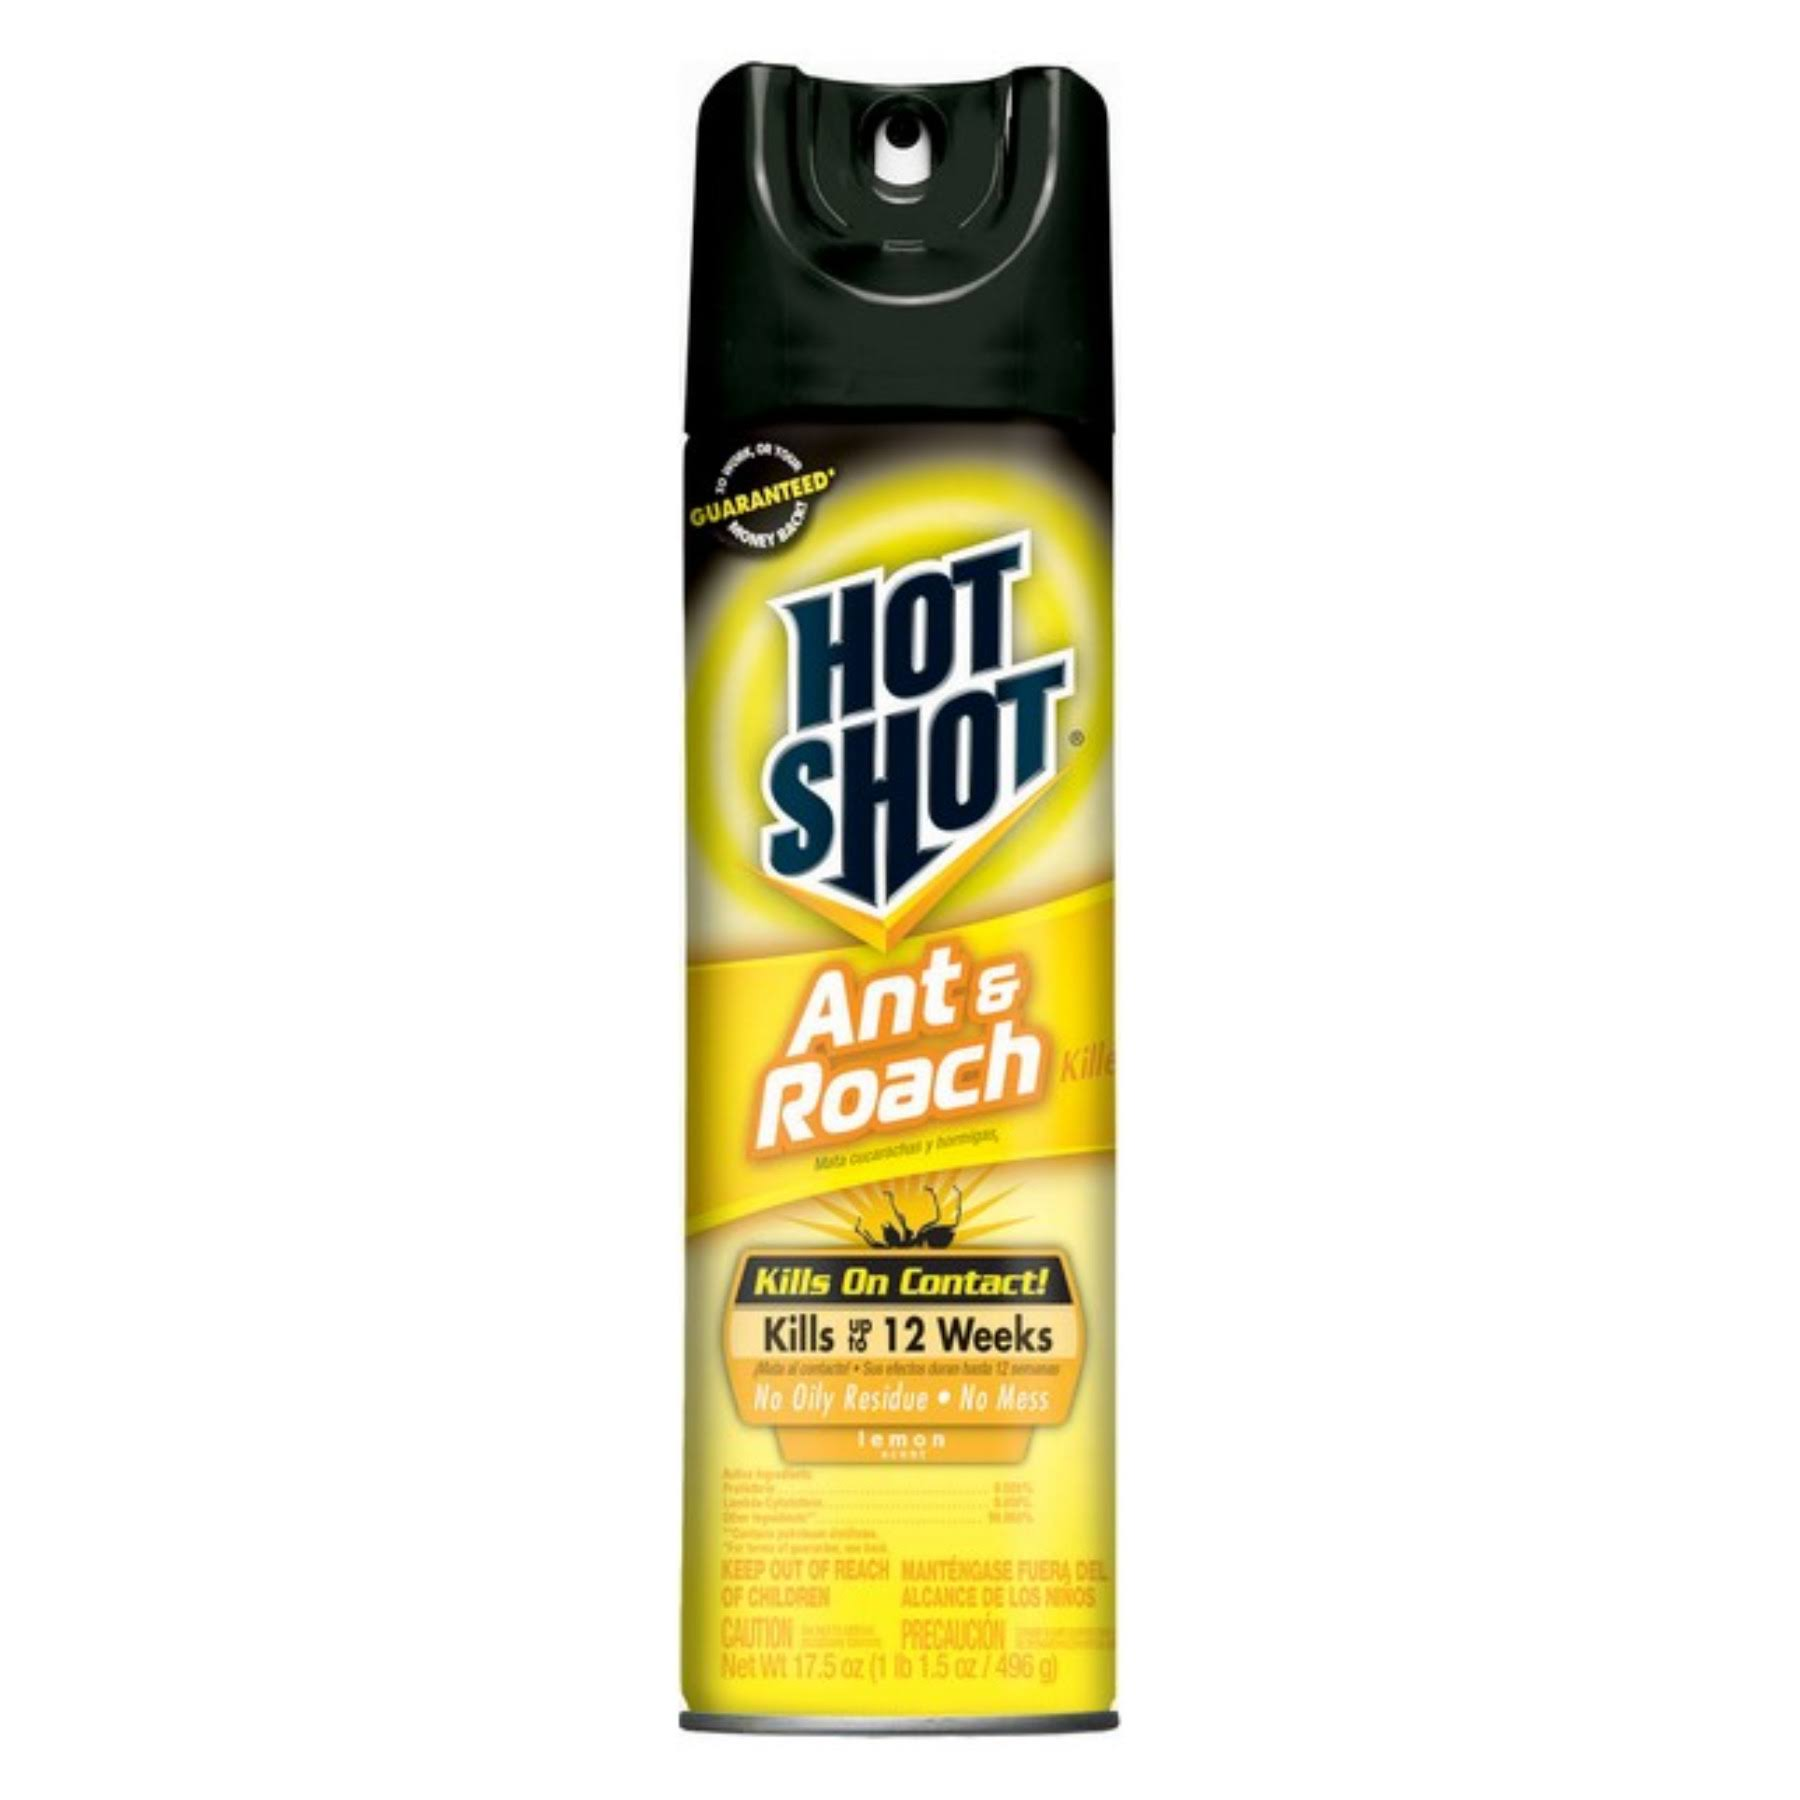 Hot Shot Lemon Scent Ant and Roach Plus Germ Killer - 17.5oz